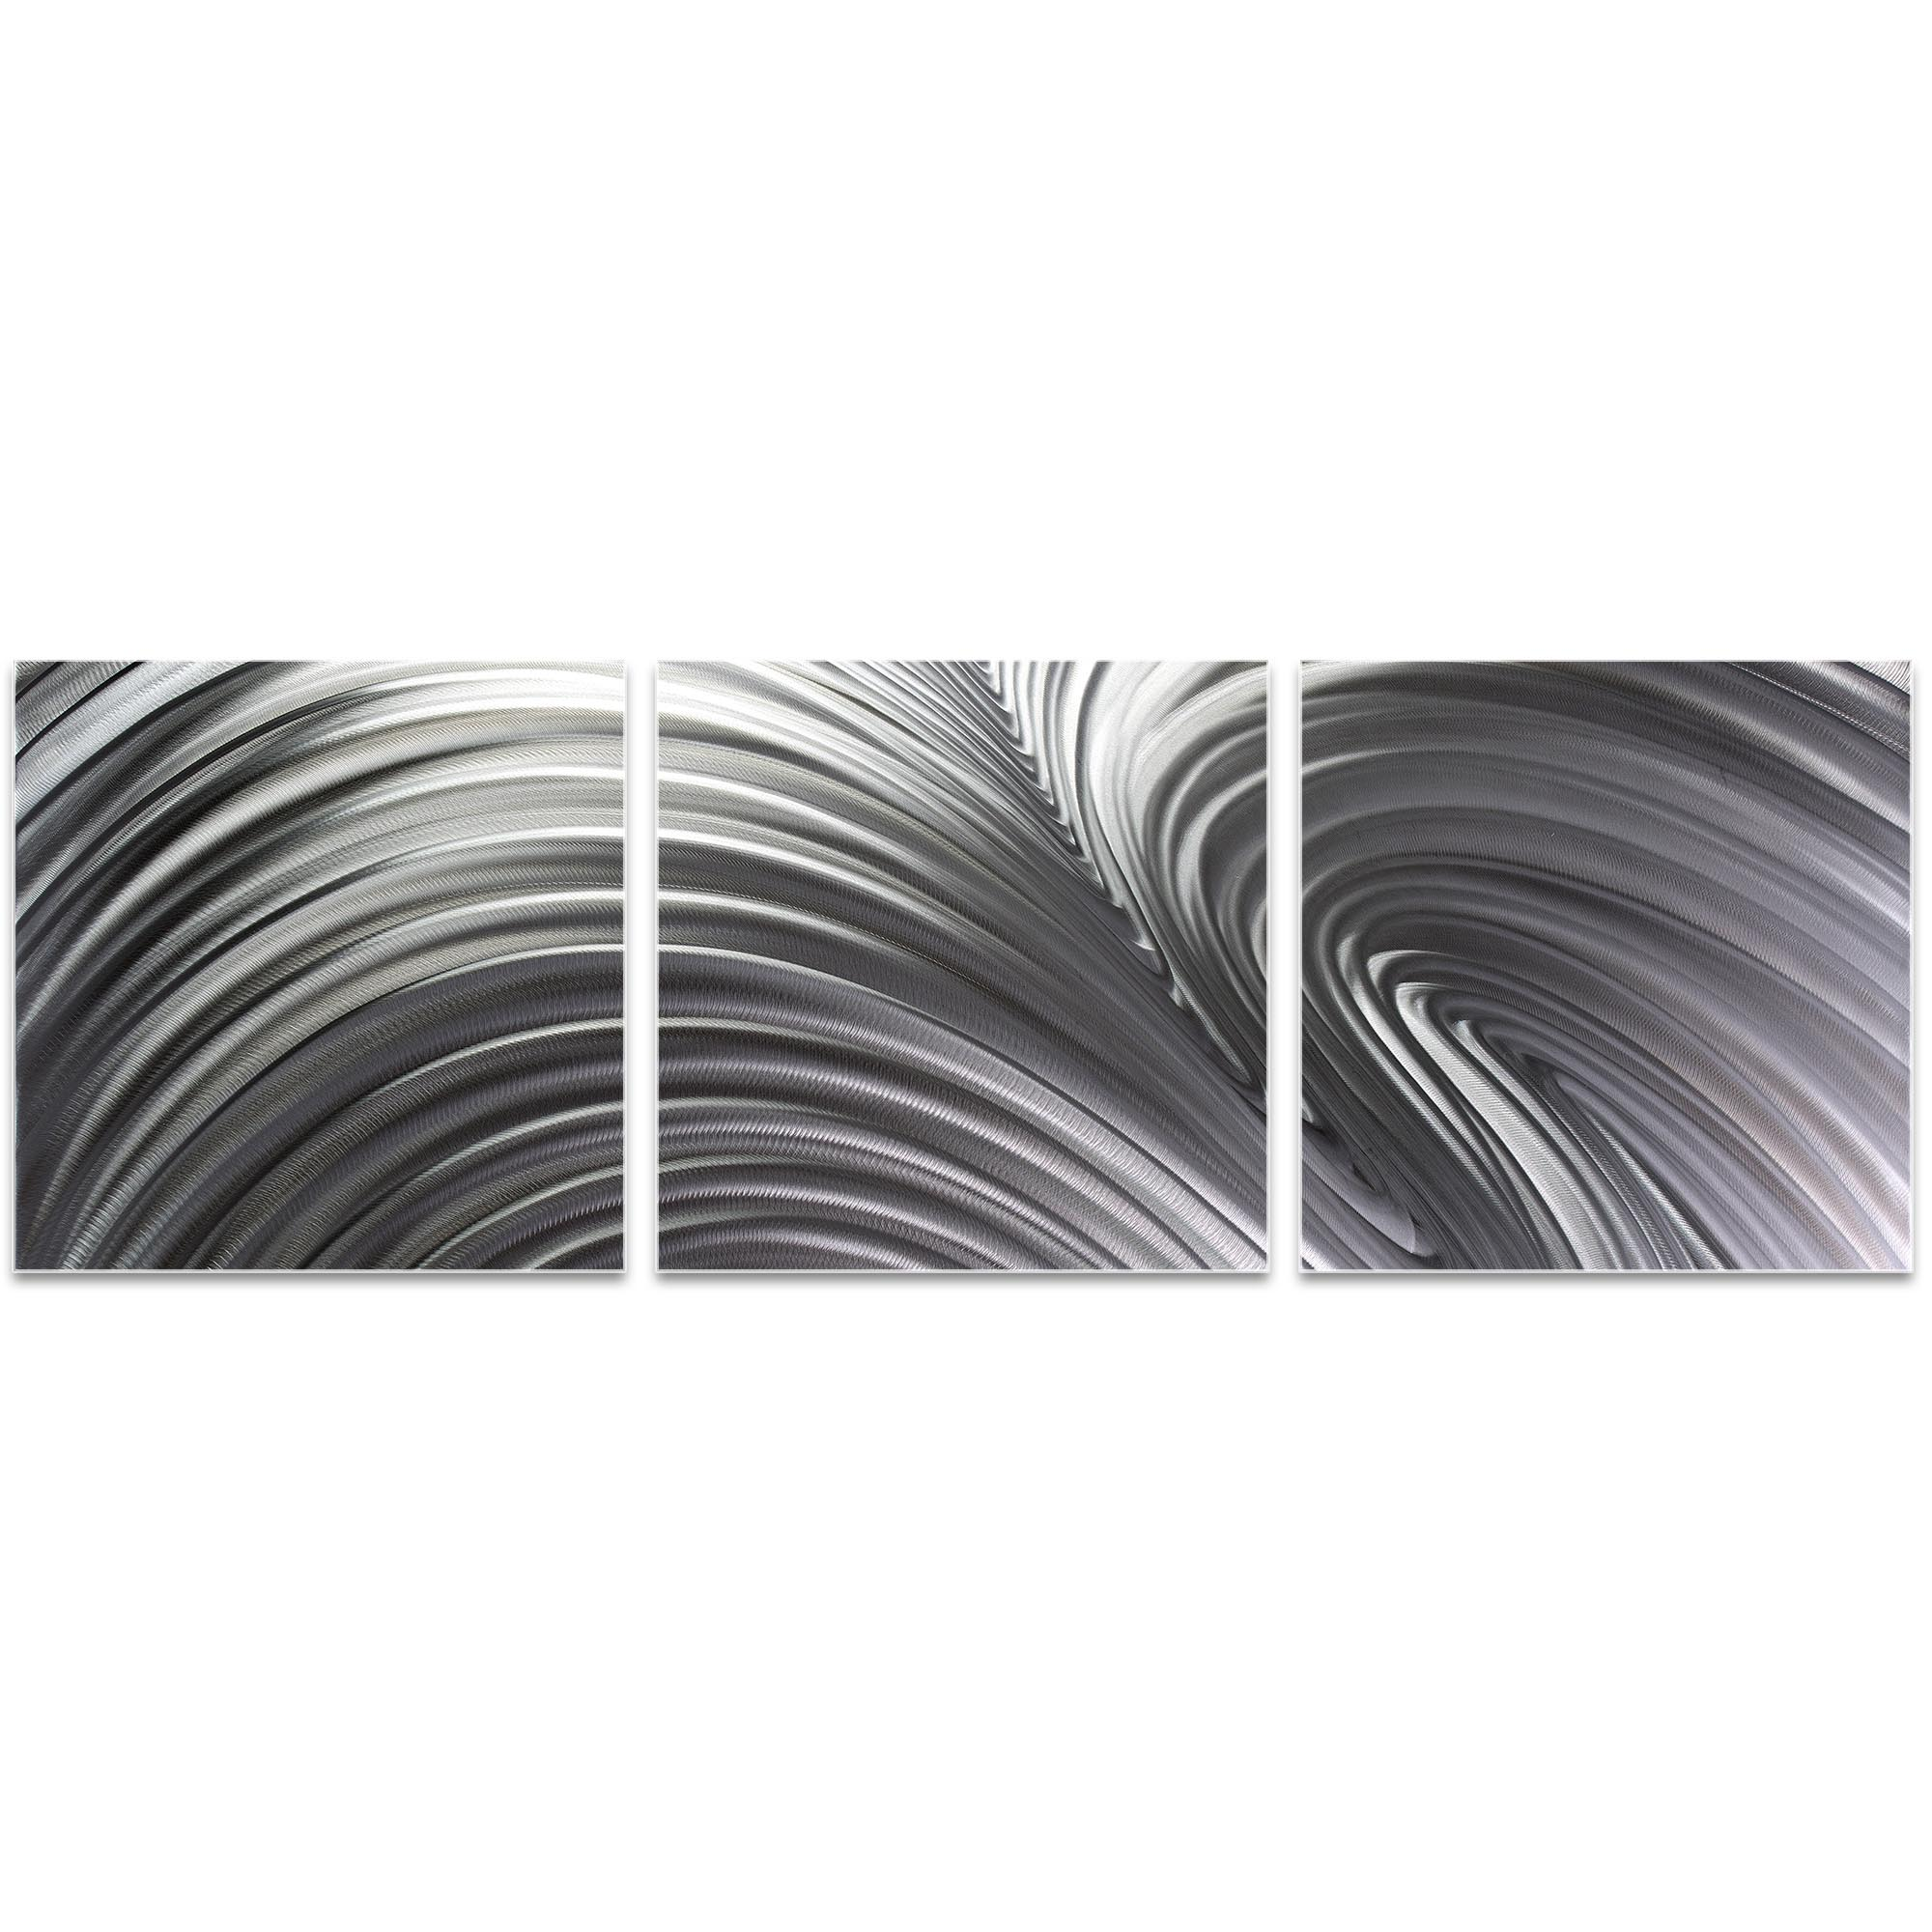 Fusion Triptych 38x12in. Metal or Acrylic Contemporary Decor - Image 2